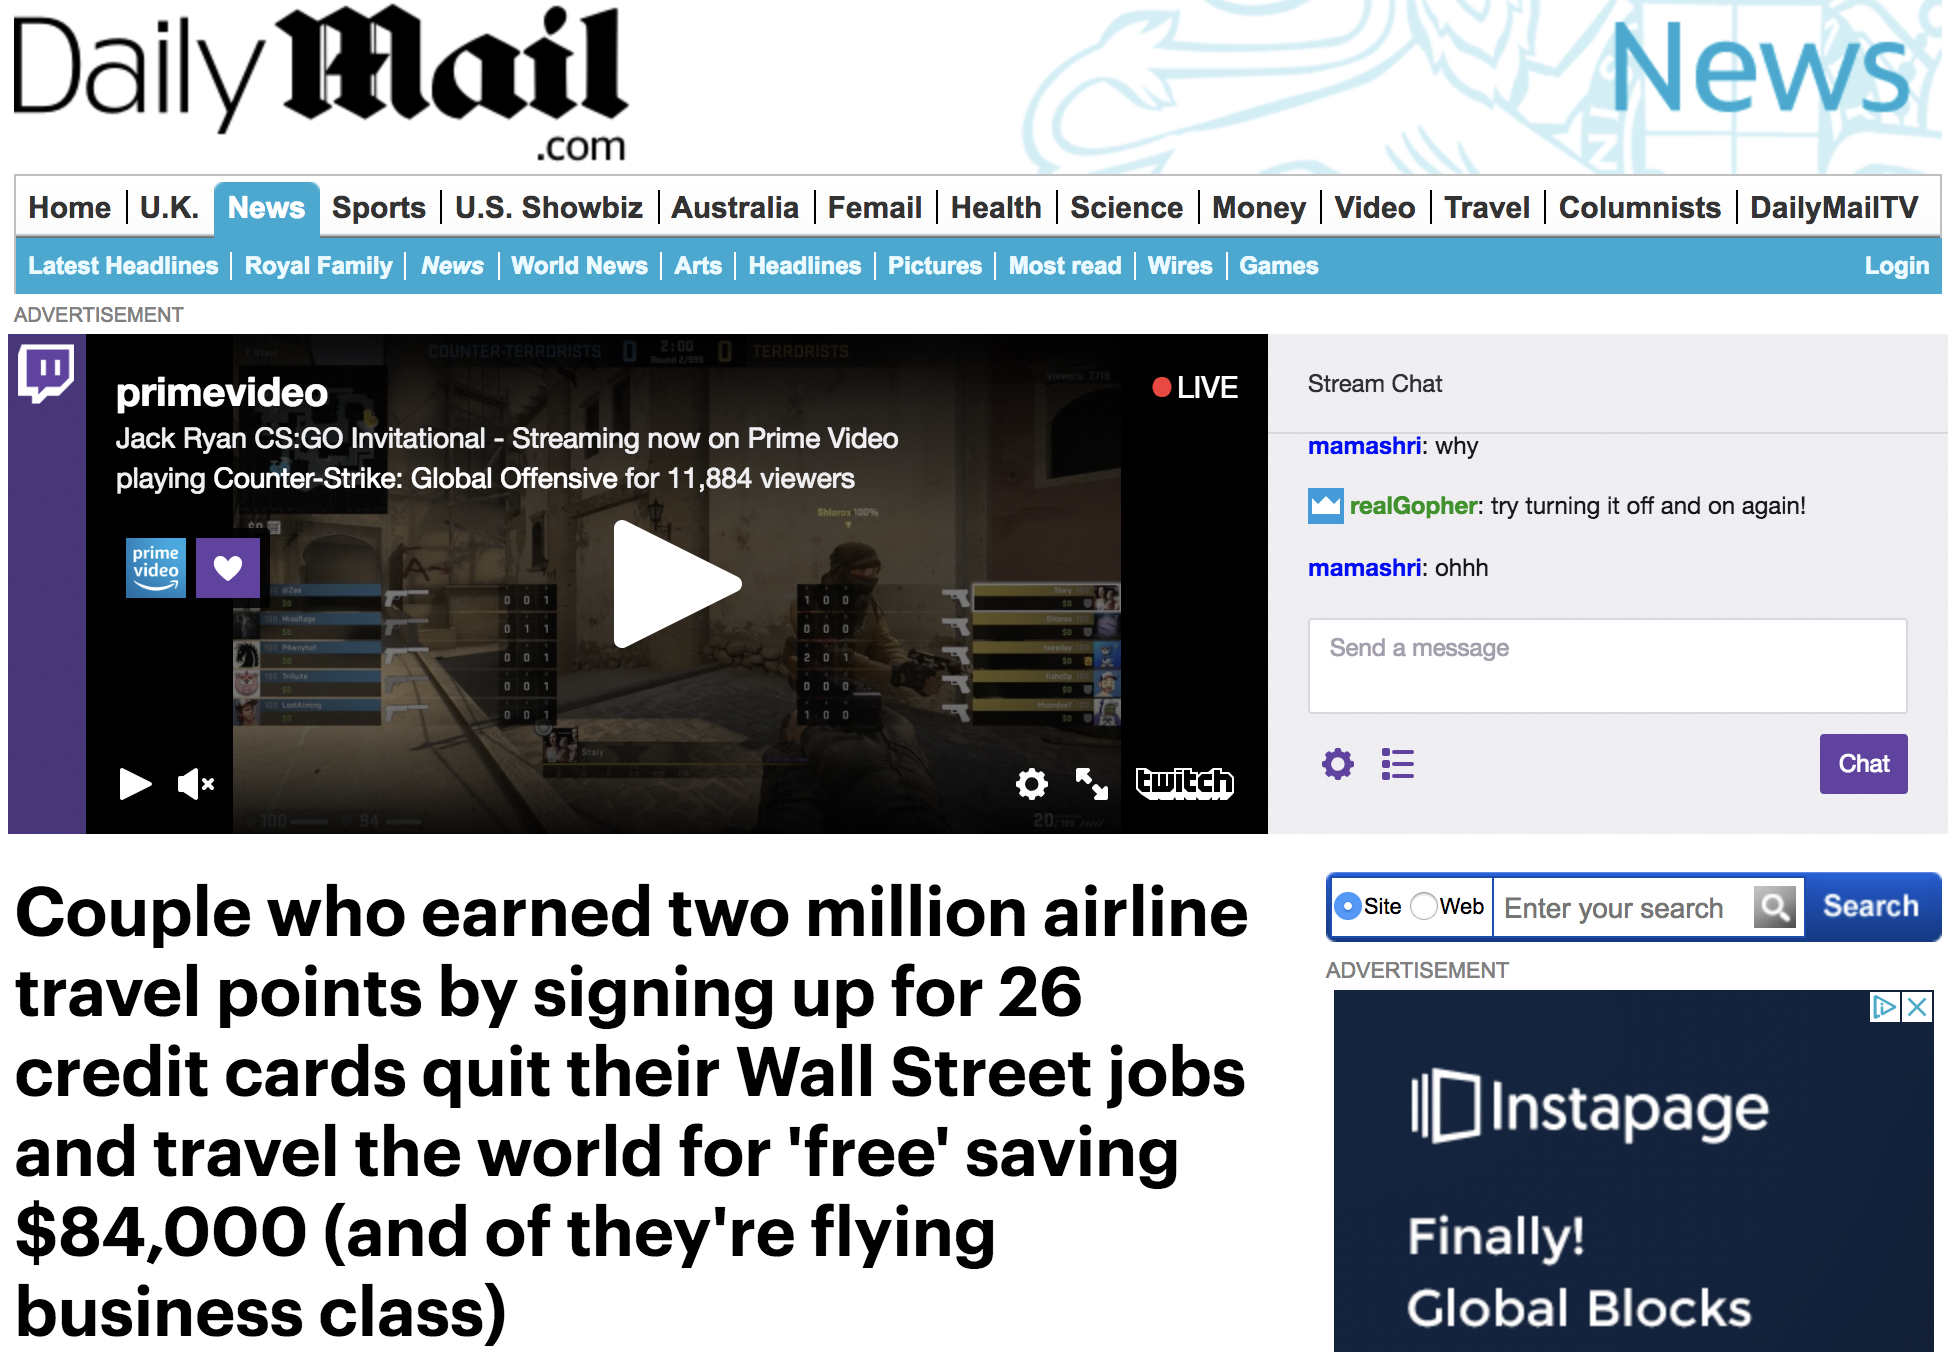 Daily Mail - Couple who earned 2 million airline travel points...